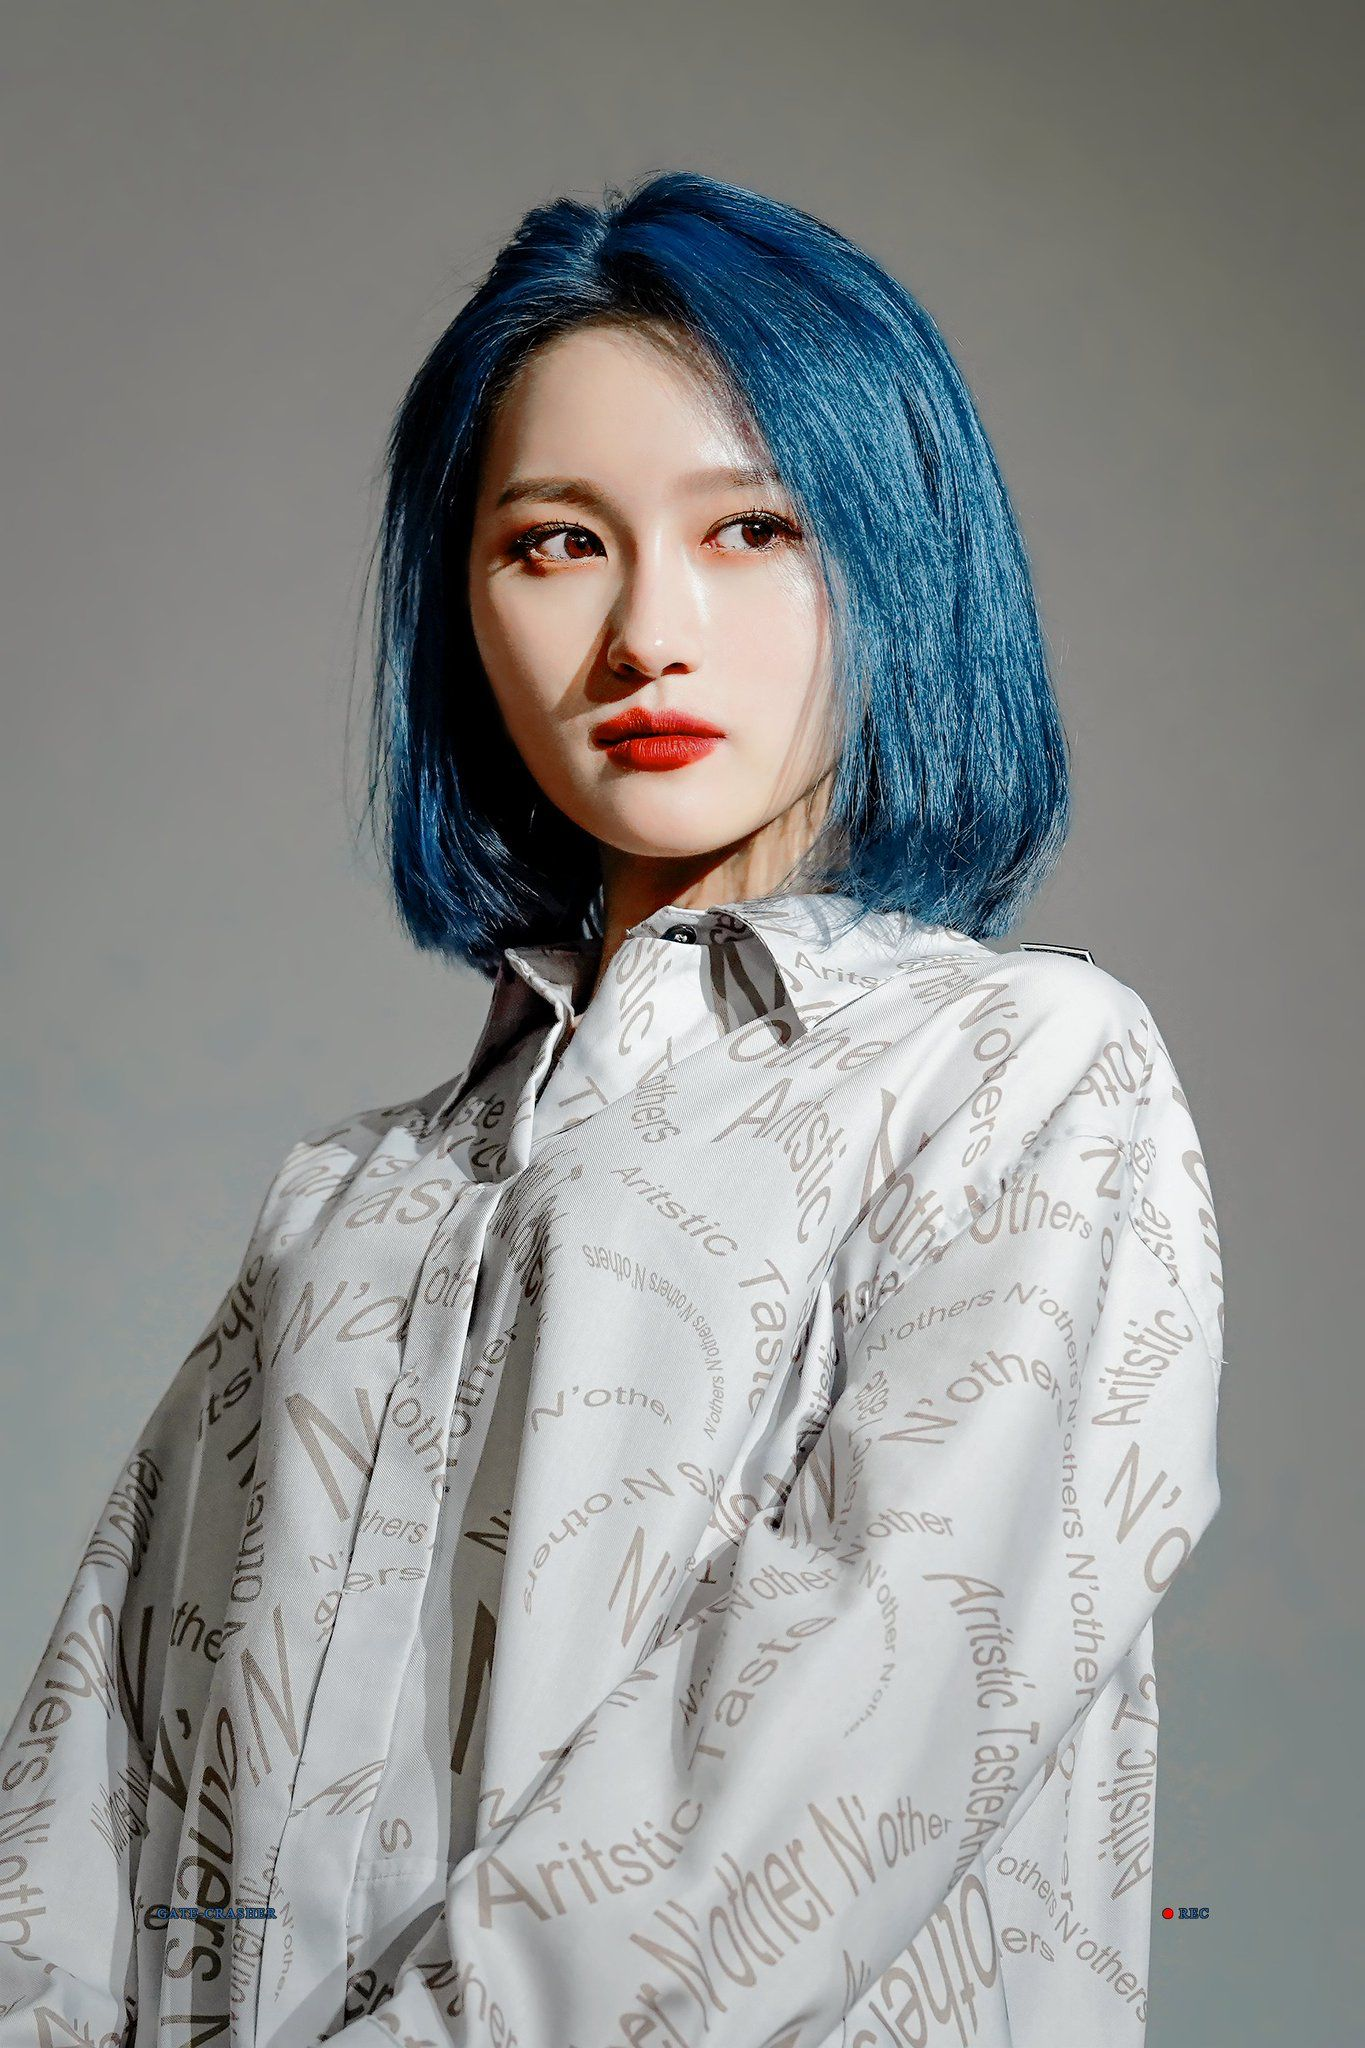 Pin By Josephine Ross On Pretty Kpop Idol Pics Dream Catcher Dream Catcher White Blue Hair